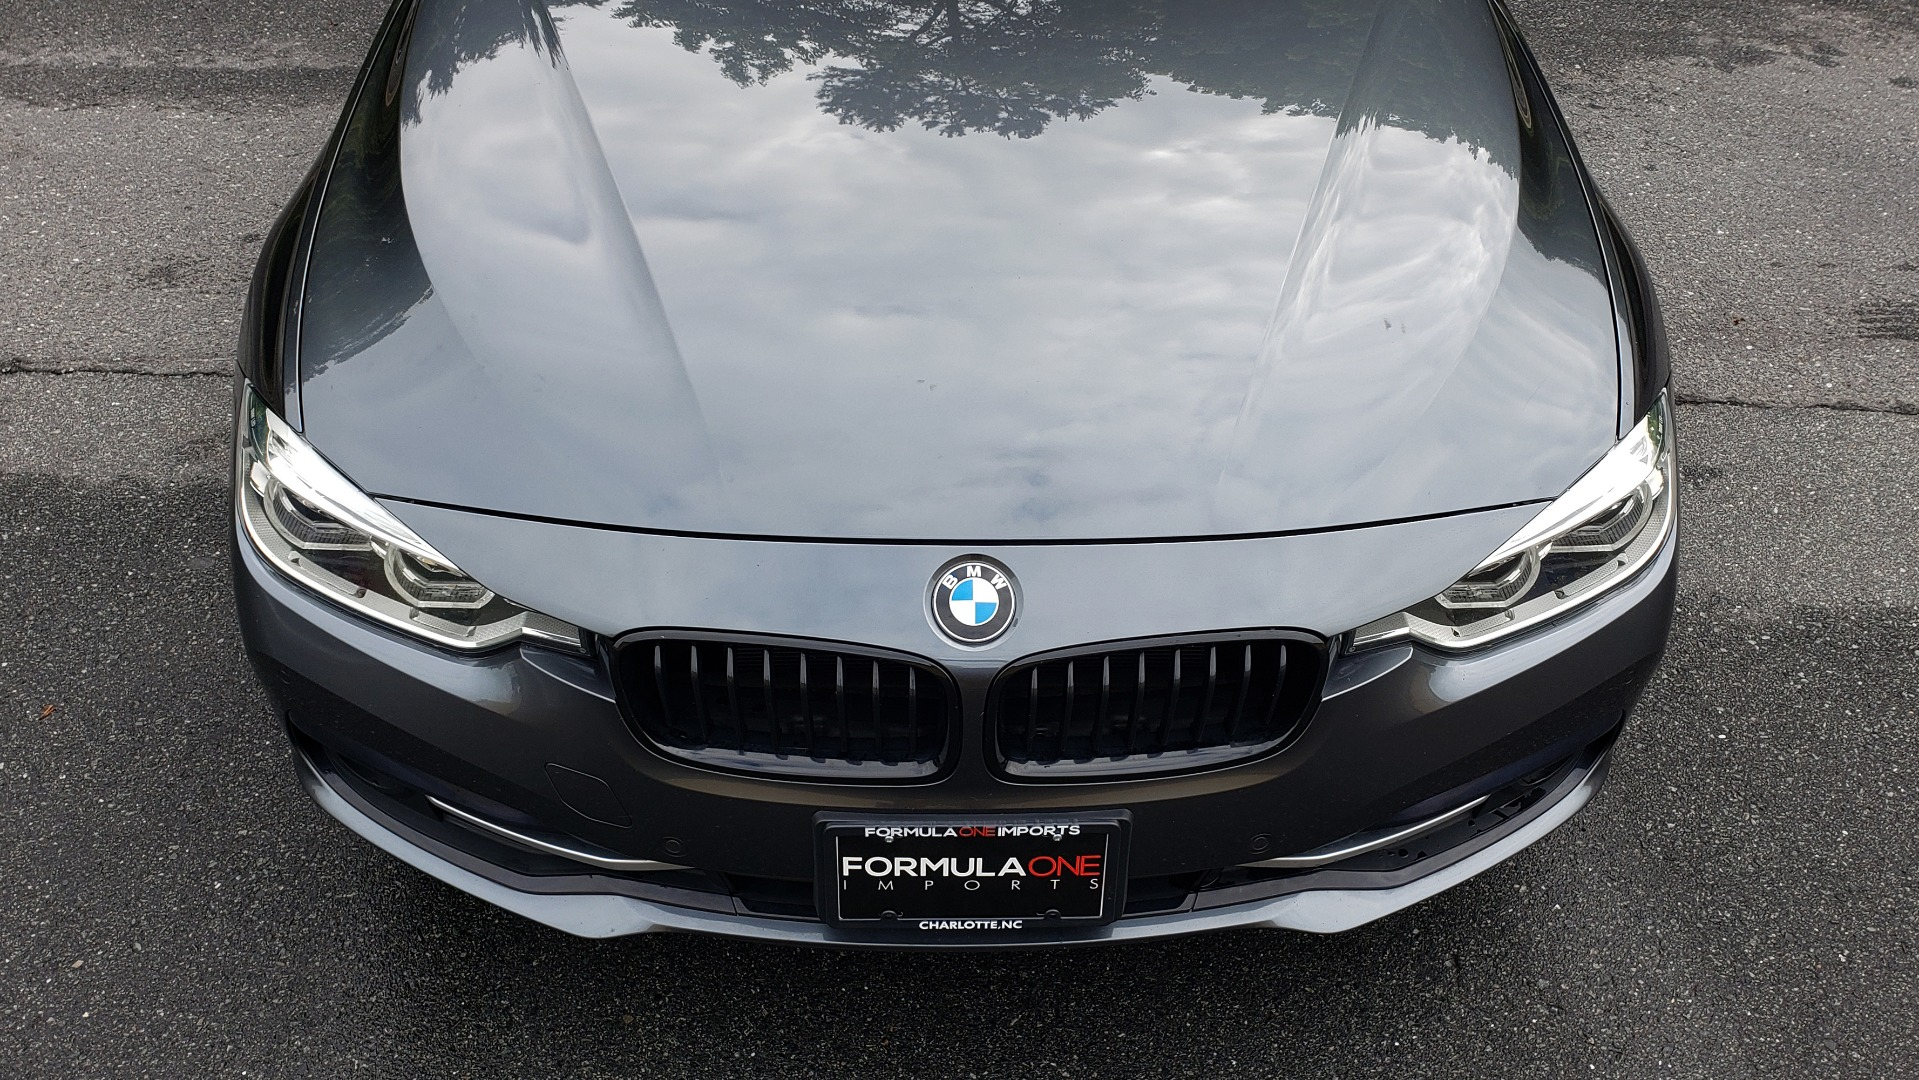 Used 2017 BMW 3 SERIES 340I XDRIVE SPORT / DRVR ASST PLUS / NAV / CLD WTHR / PARK ASST for sale Sold at Formula Imports in Charlotte NC 28227 20